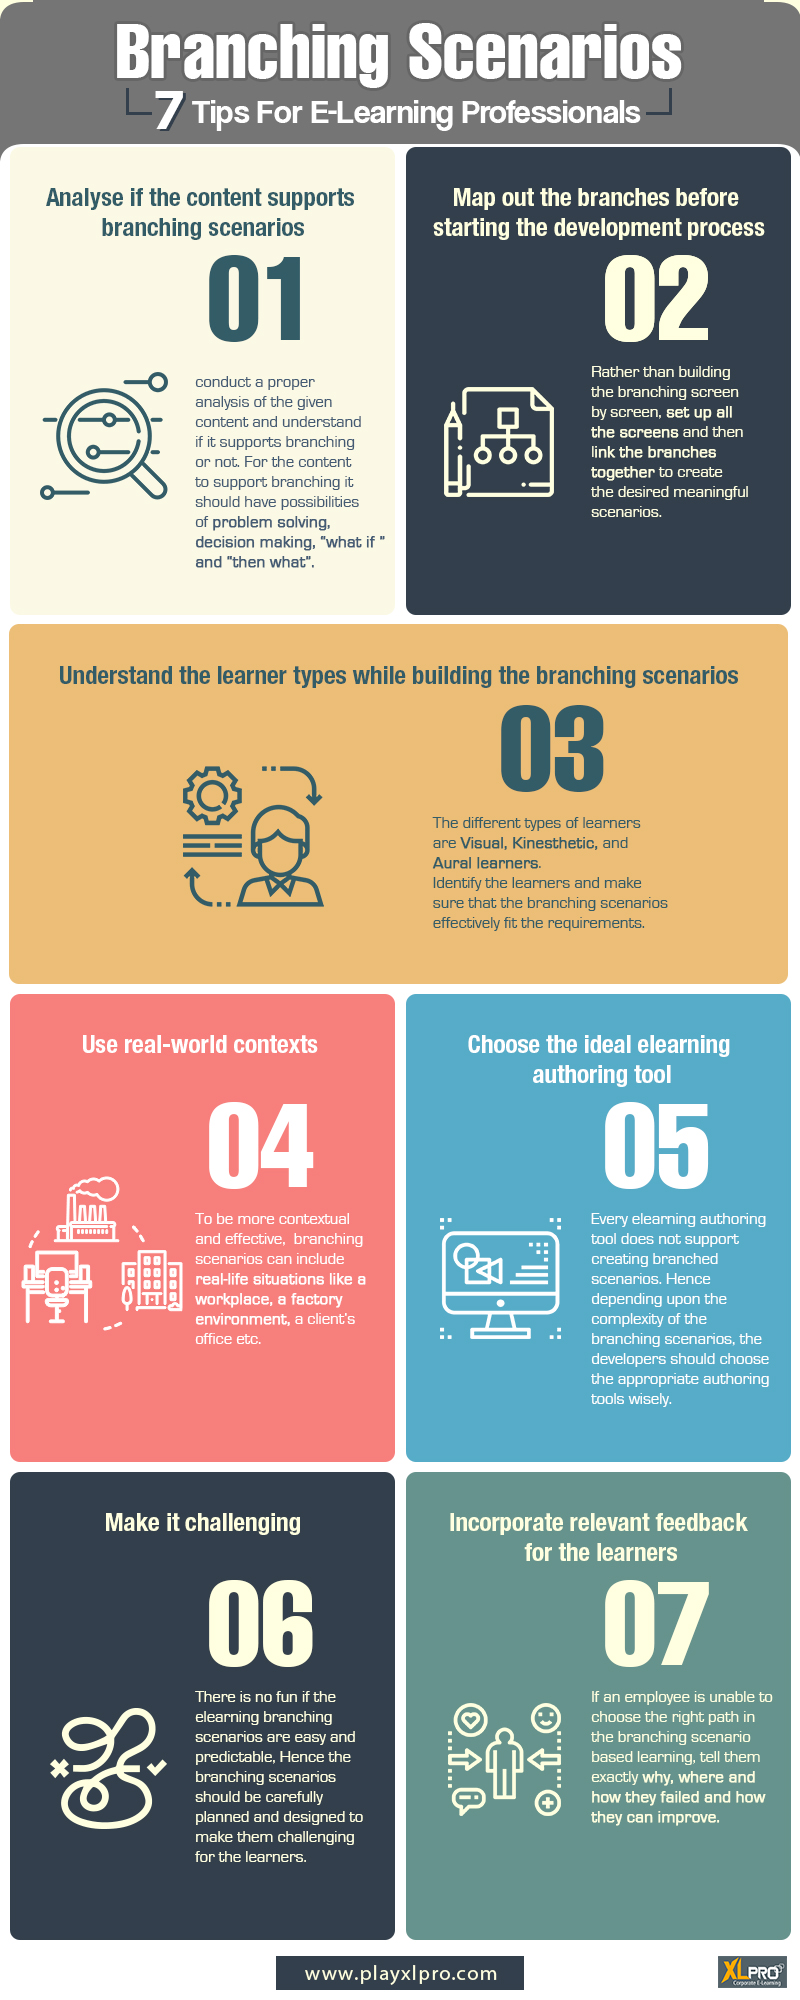 Infographic depicting 7 blocks for branching scenario tips for e-learning professionals